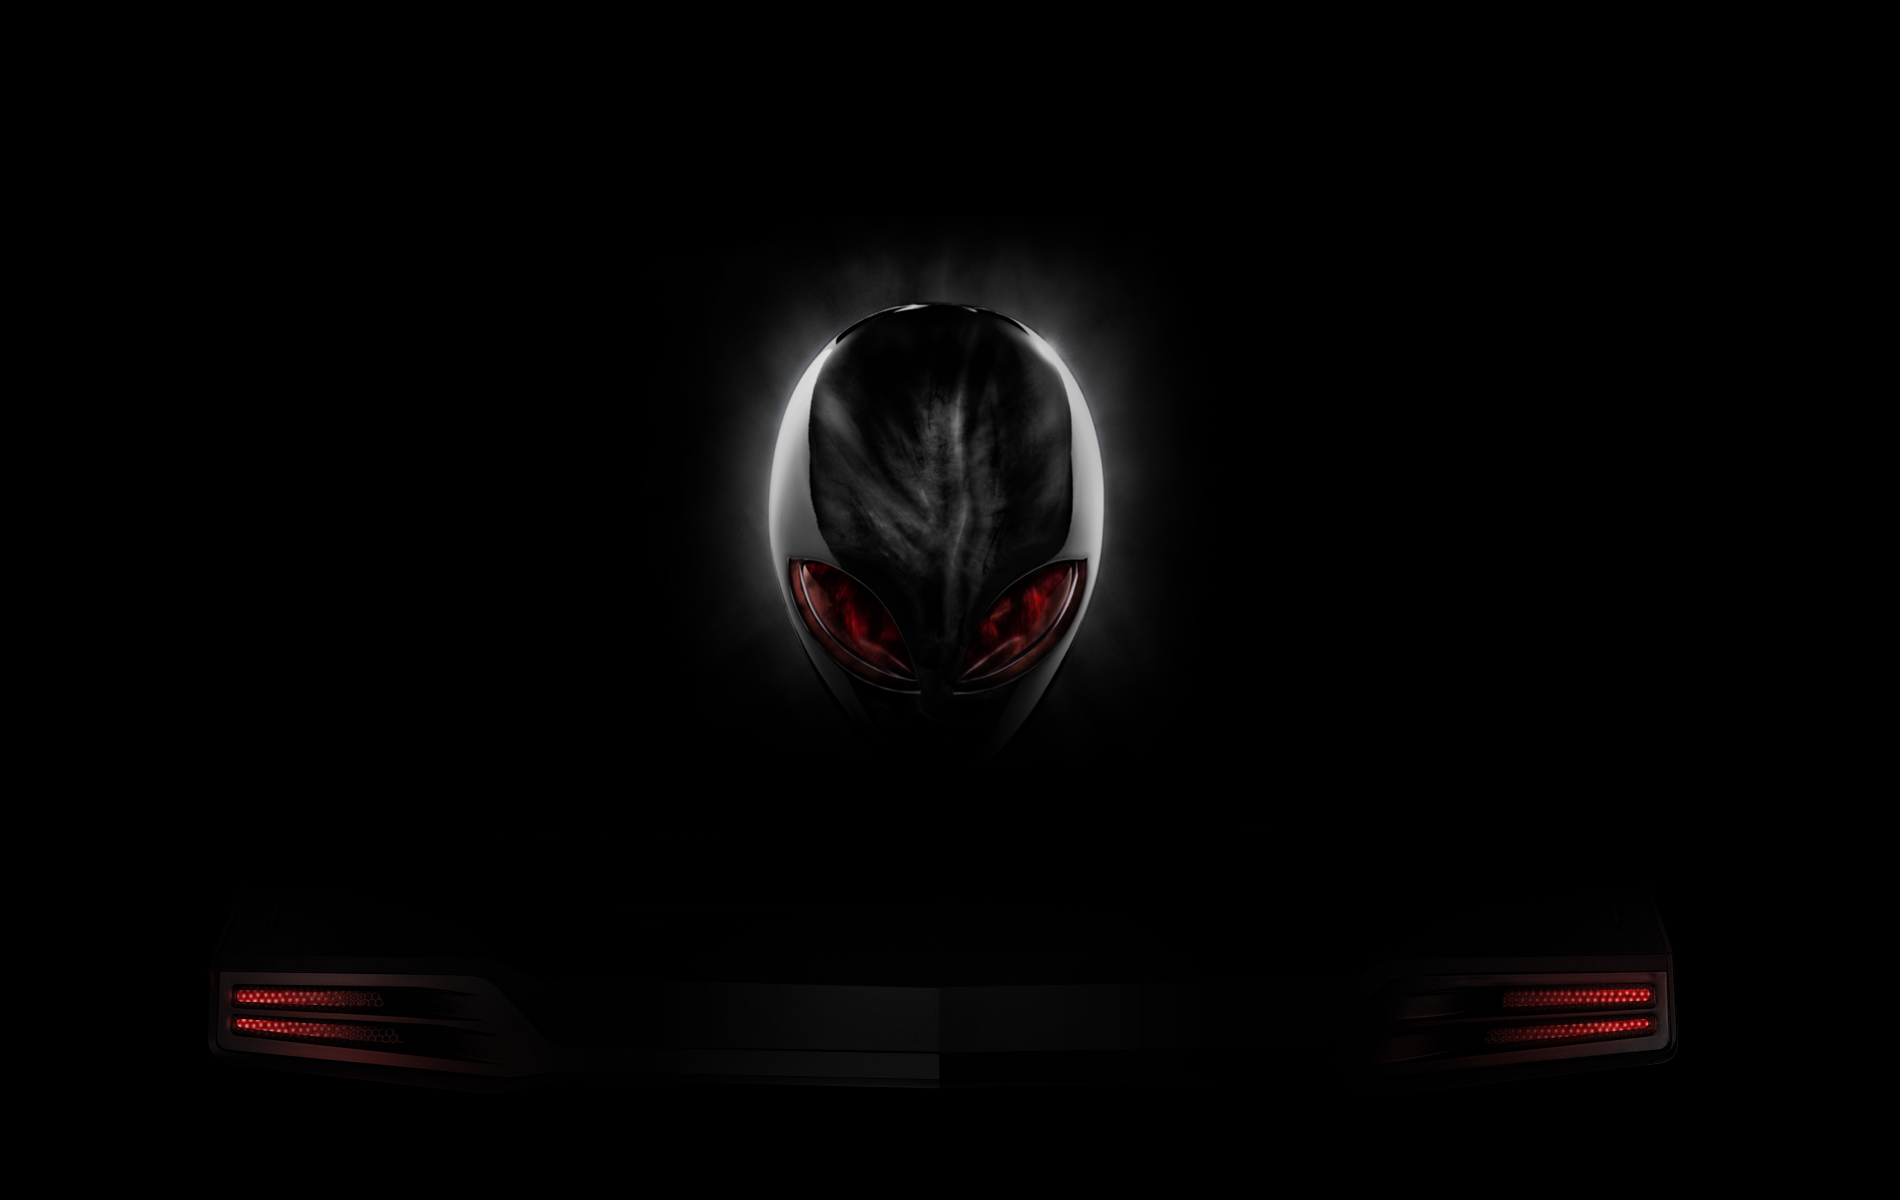 HD Alienware Wallpapers 19201080 Alienware Backgrounds for Laptops 1900x1200